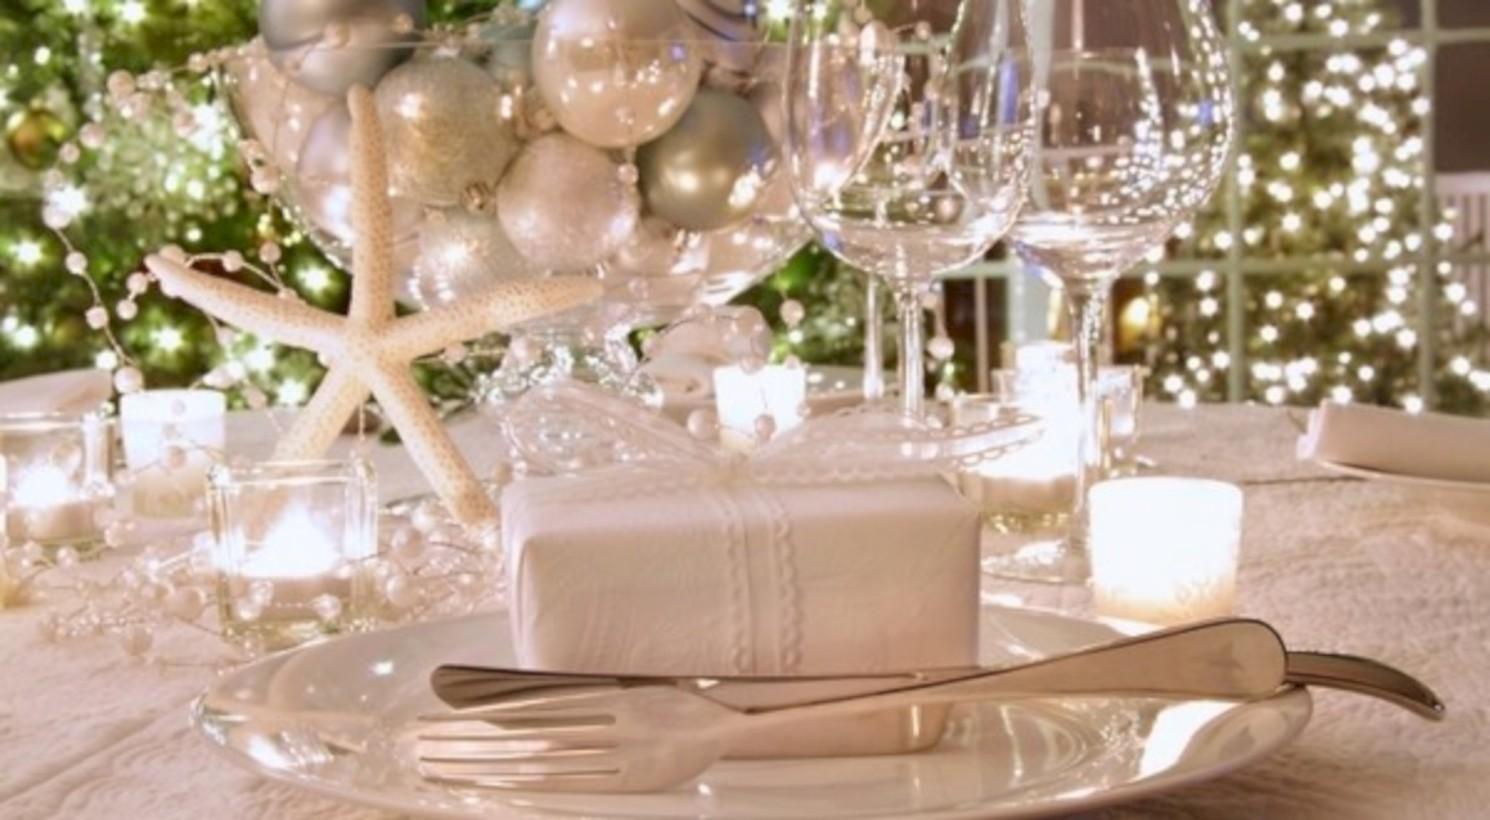 Christmas Table Ideas Silver.Stylish Silver And White Christmas Table Centerpieces Ideas